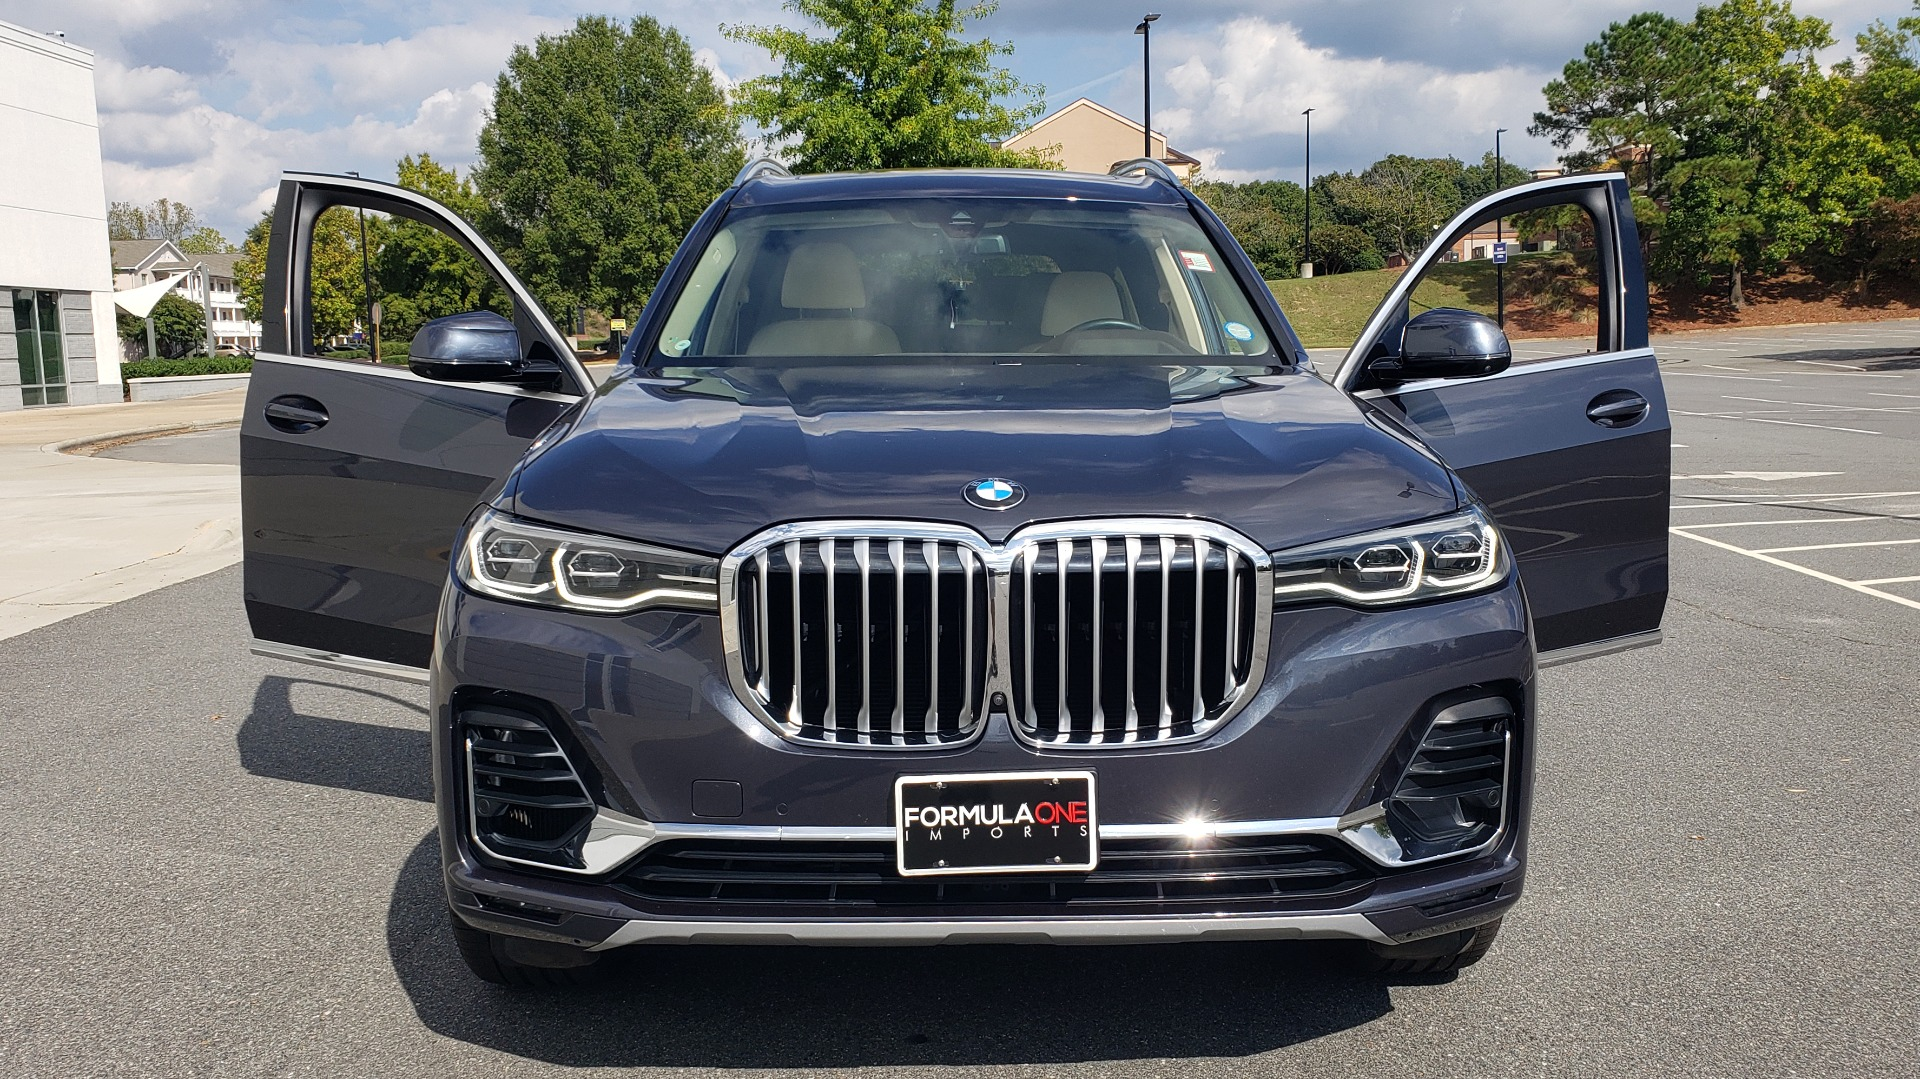 Used 2019 BMW X7 XDRIVE40I PREMIUM / LUXURY / COLD WEATHER / PARK ASST / PANORAMIC SKY / TOW for sale $75,999 at Formula Imports in Charlotte NC 28227 26